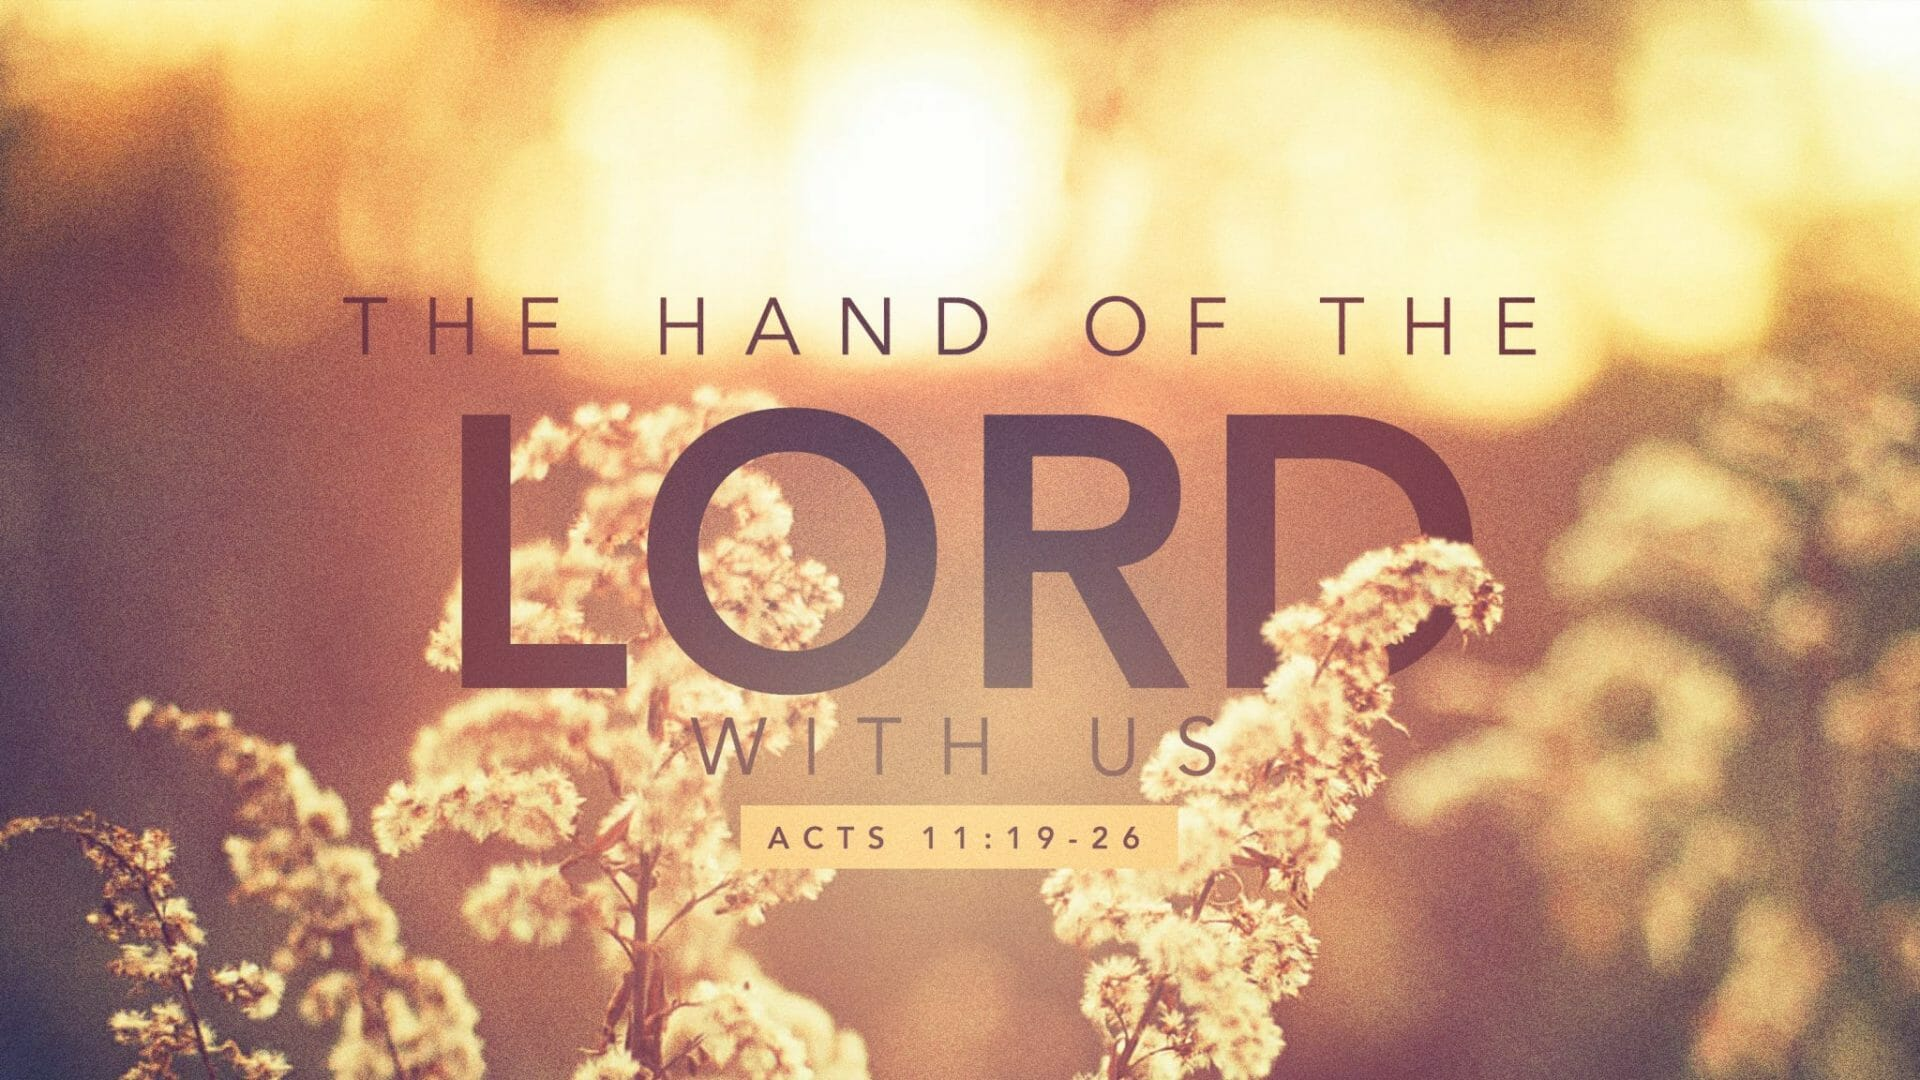 the hand of the lord, god's great power, god's anointing, acts 2 42, committed to jesus, disciple